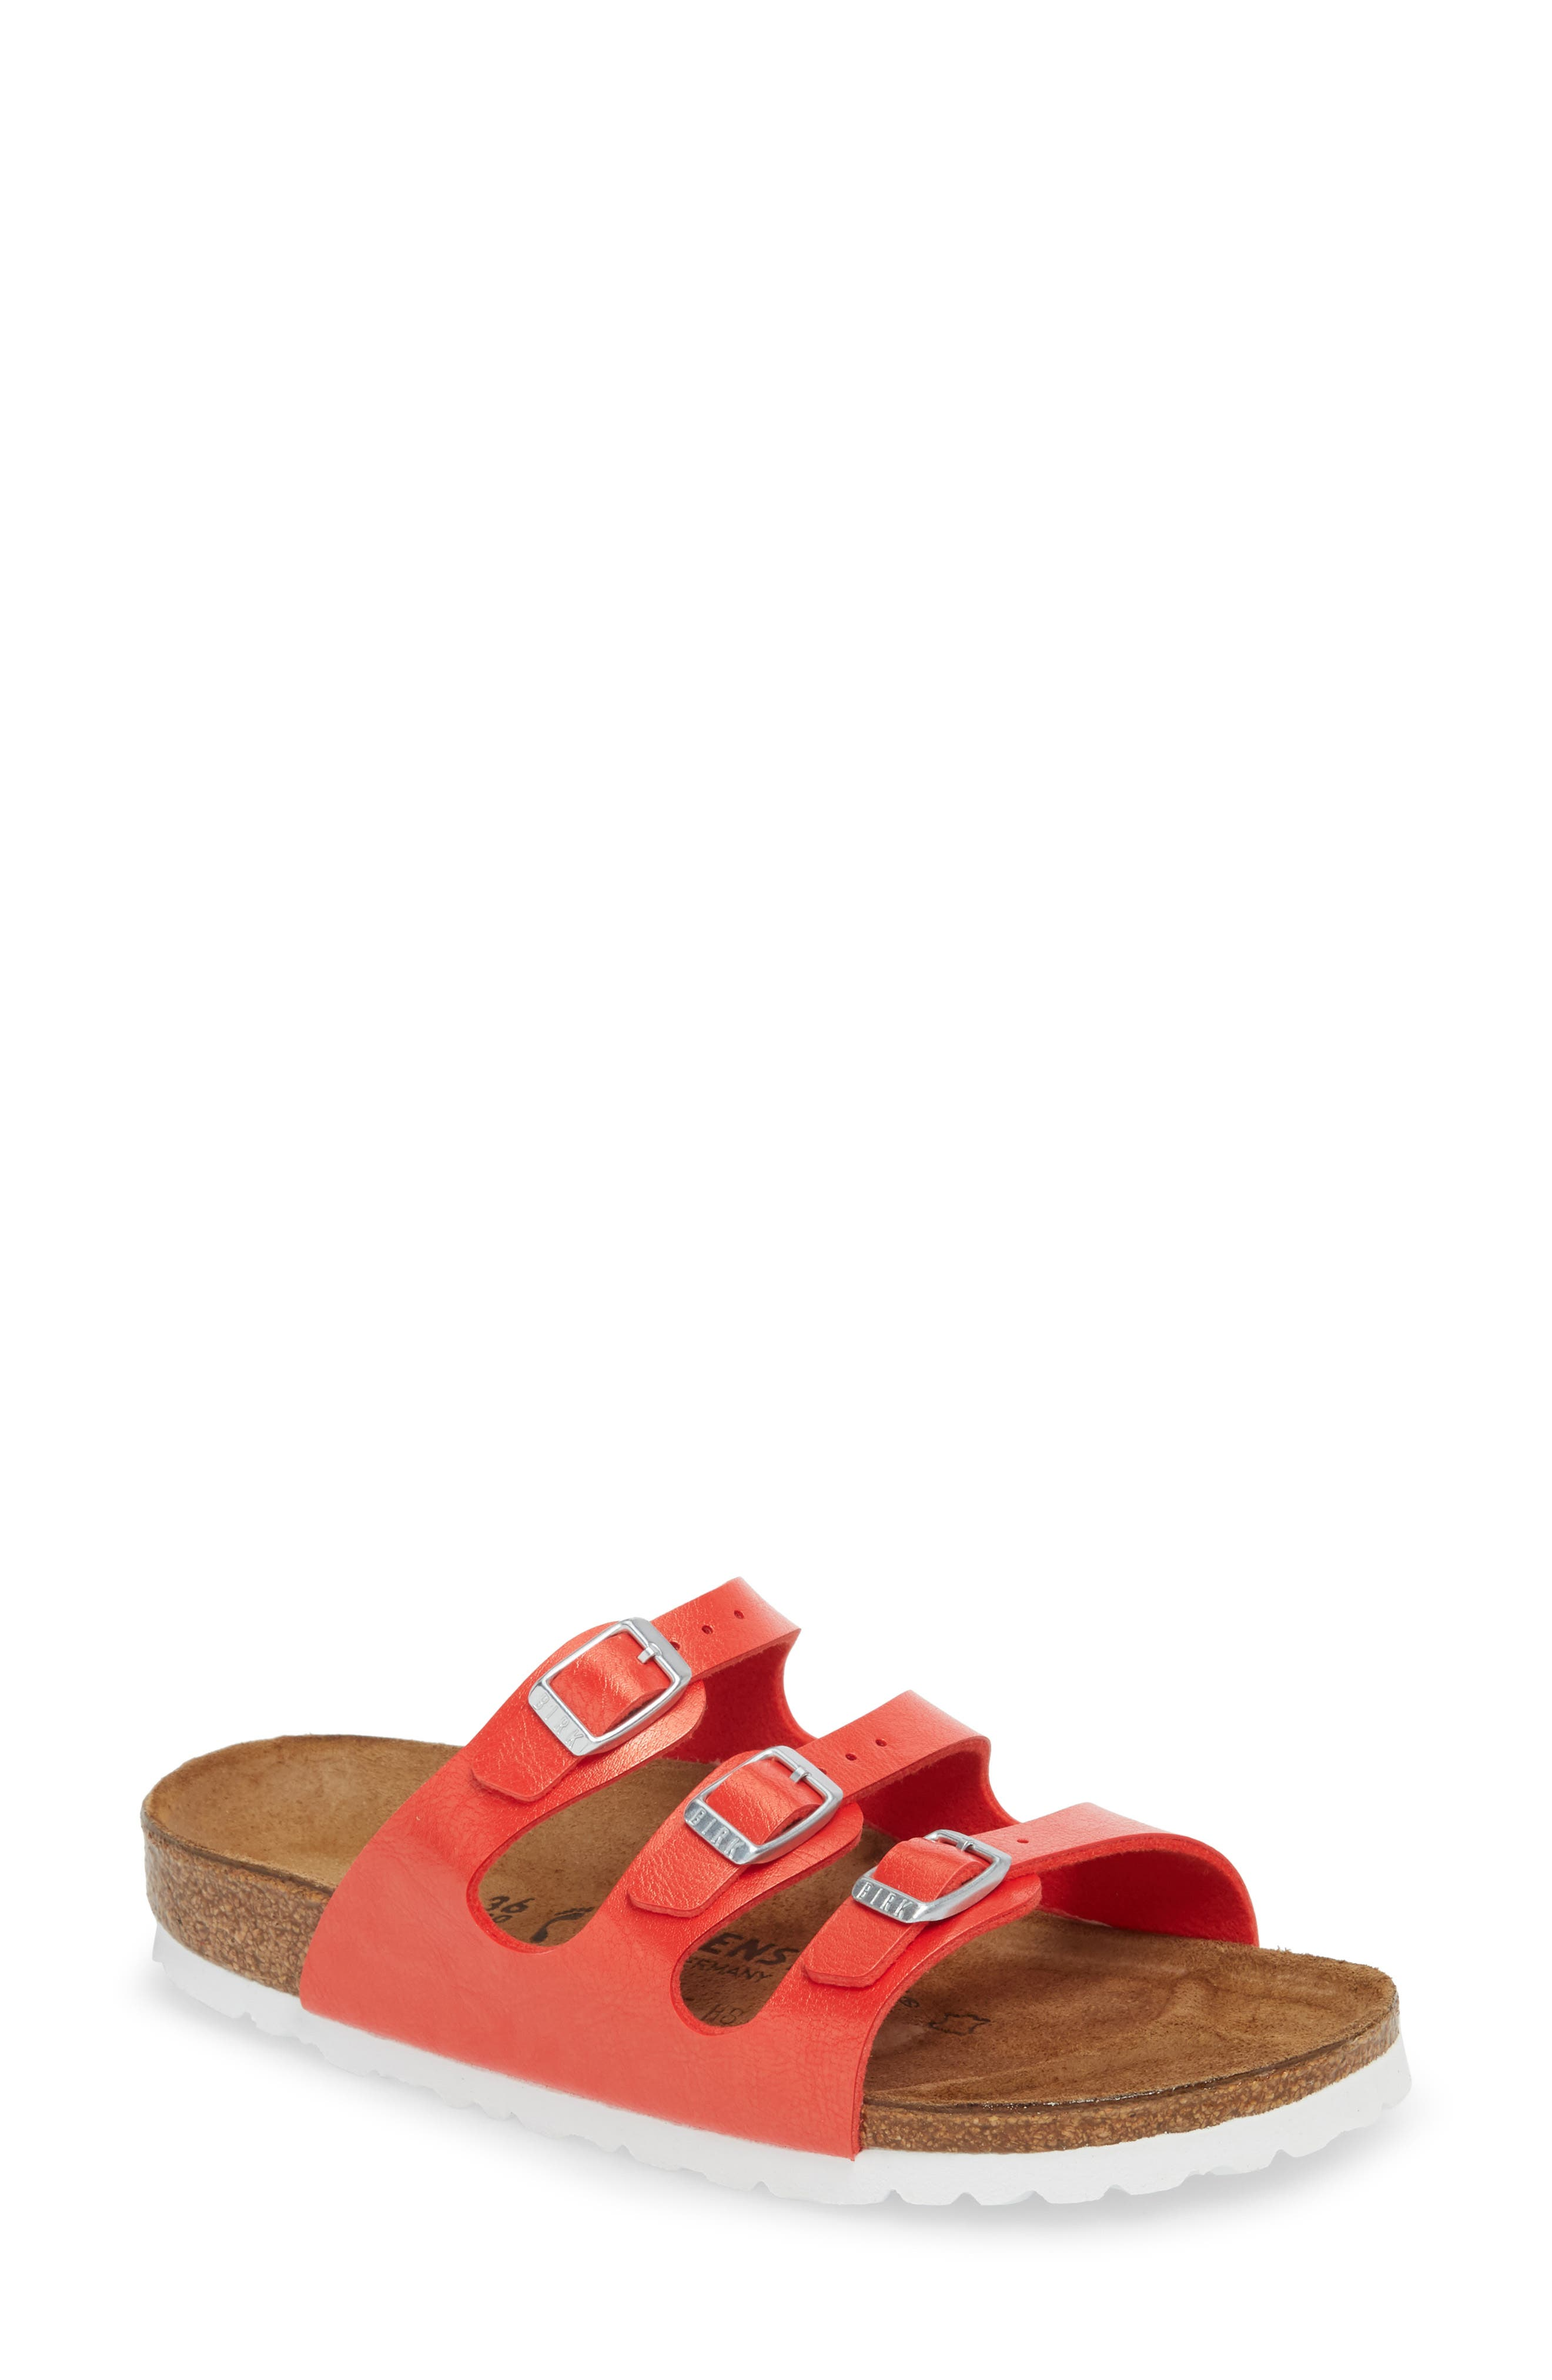 'Florida' Soft Footbed Sandal,                         Main,                         color, Graceful Hibiscus Leather